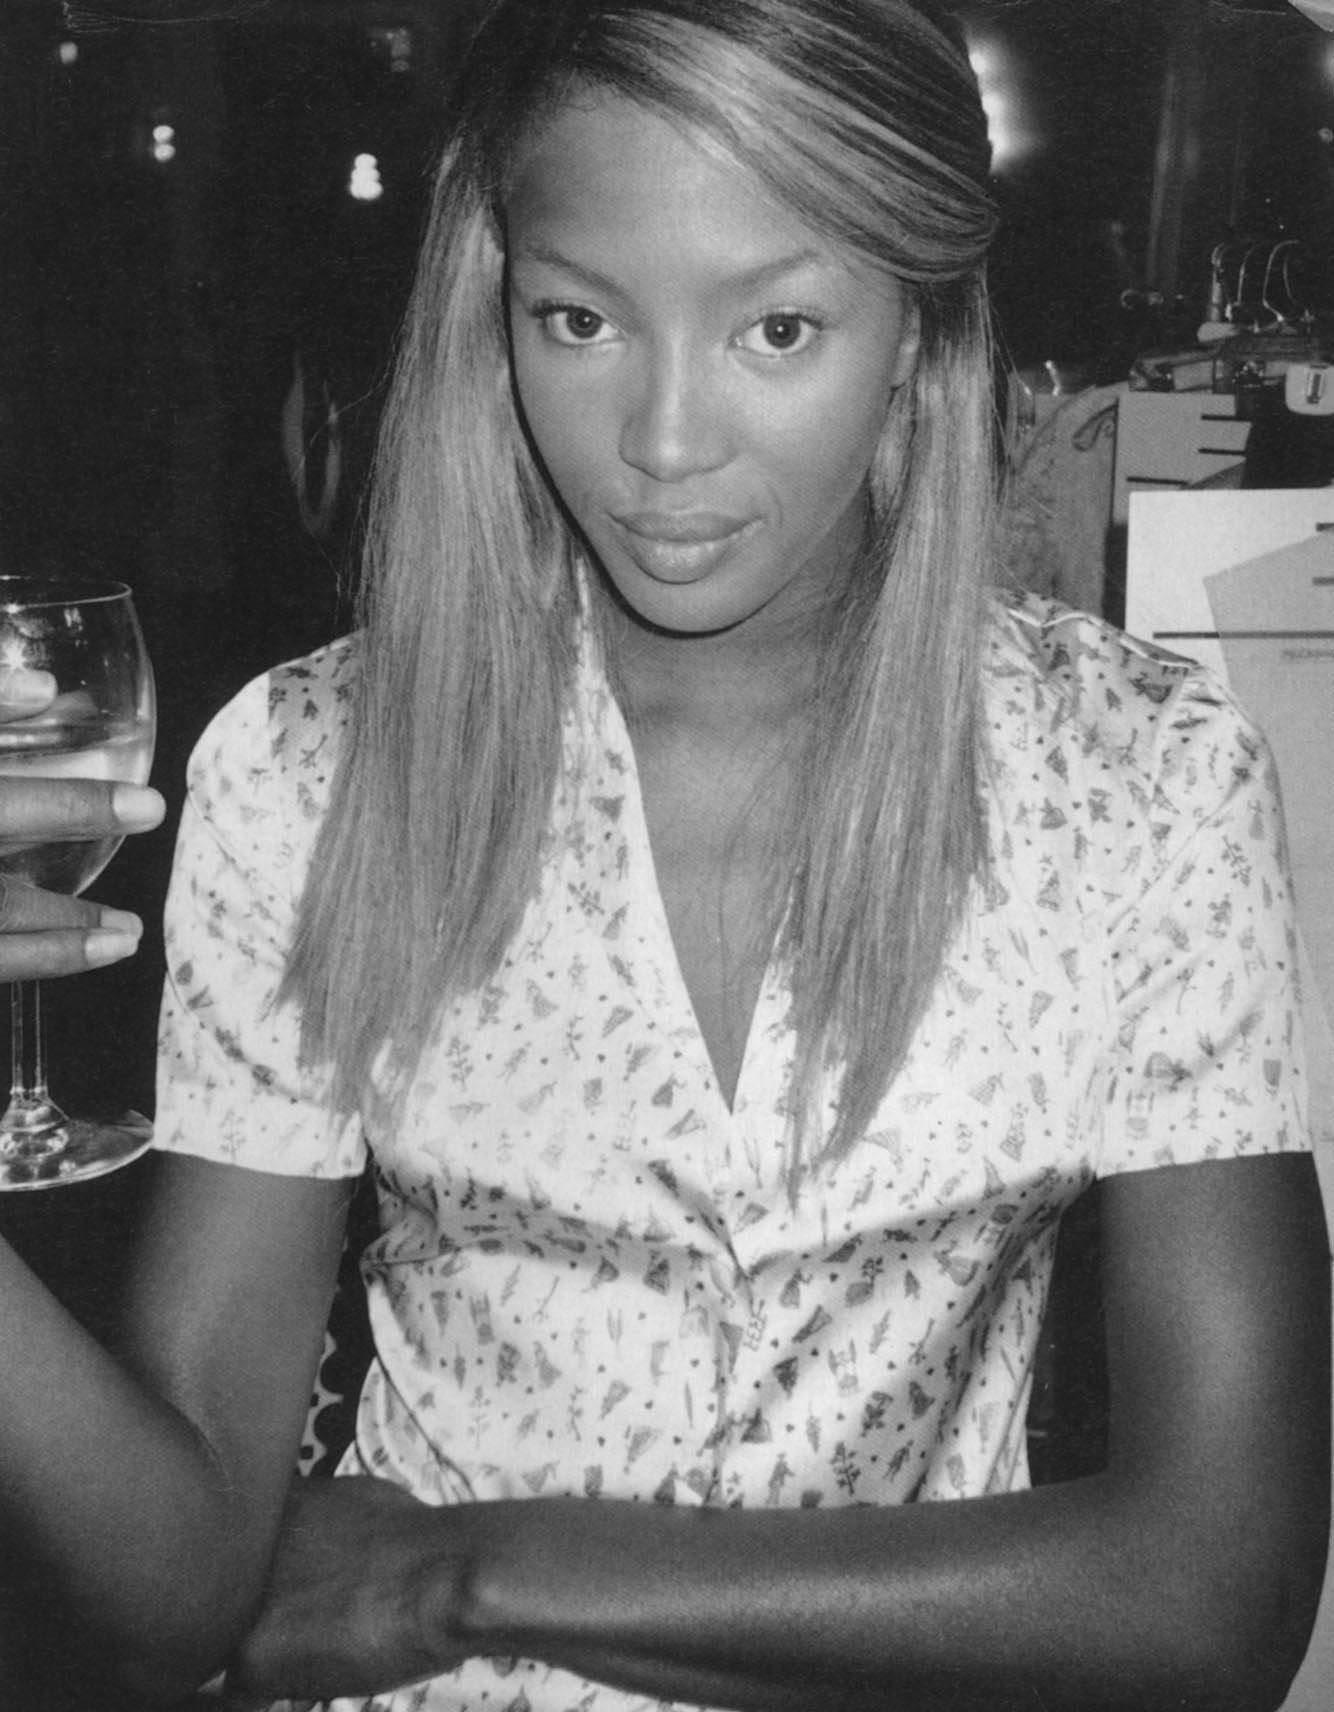 naomi campbell photography terry richardson marc jacpobs fashion show new york i d magazine no.148 january 1996